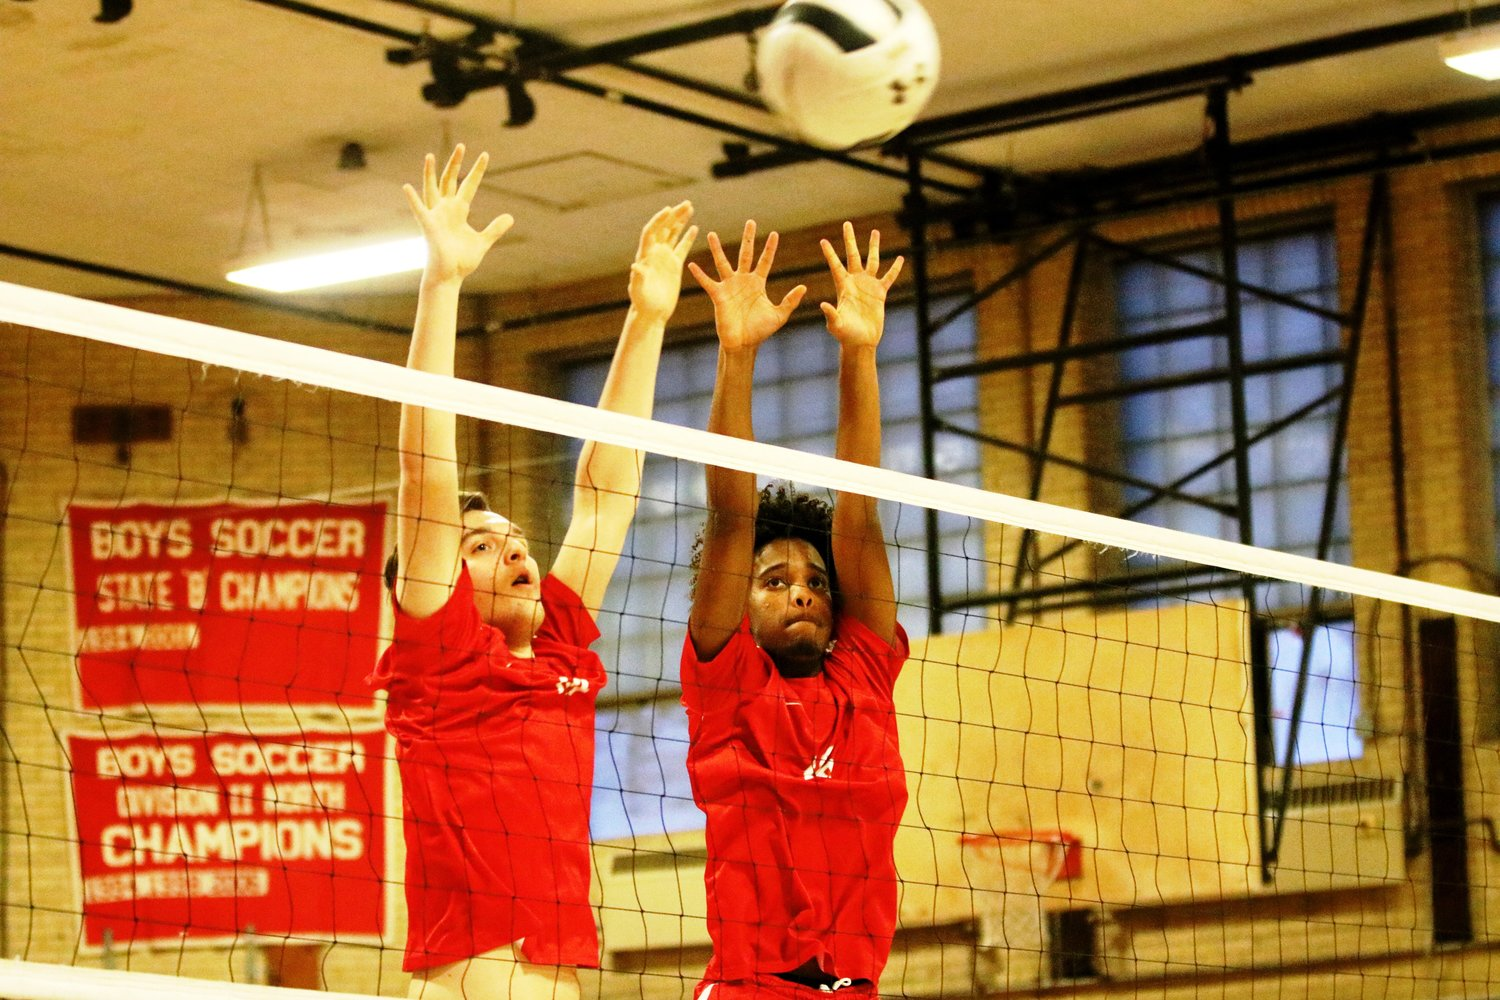 EPHS Ben Stone and Tiago Fernandez block a ball in volleyball match vs Tolman High. Photo by Paul Tumidajski